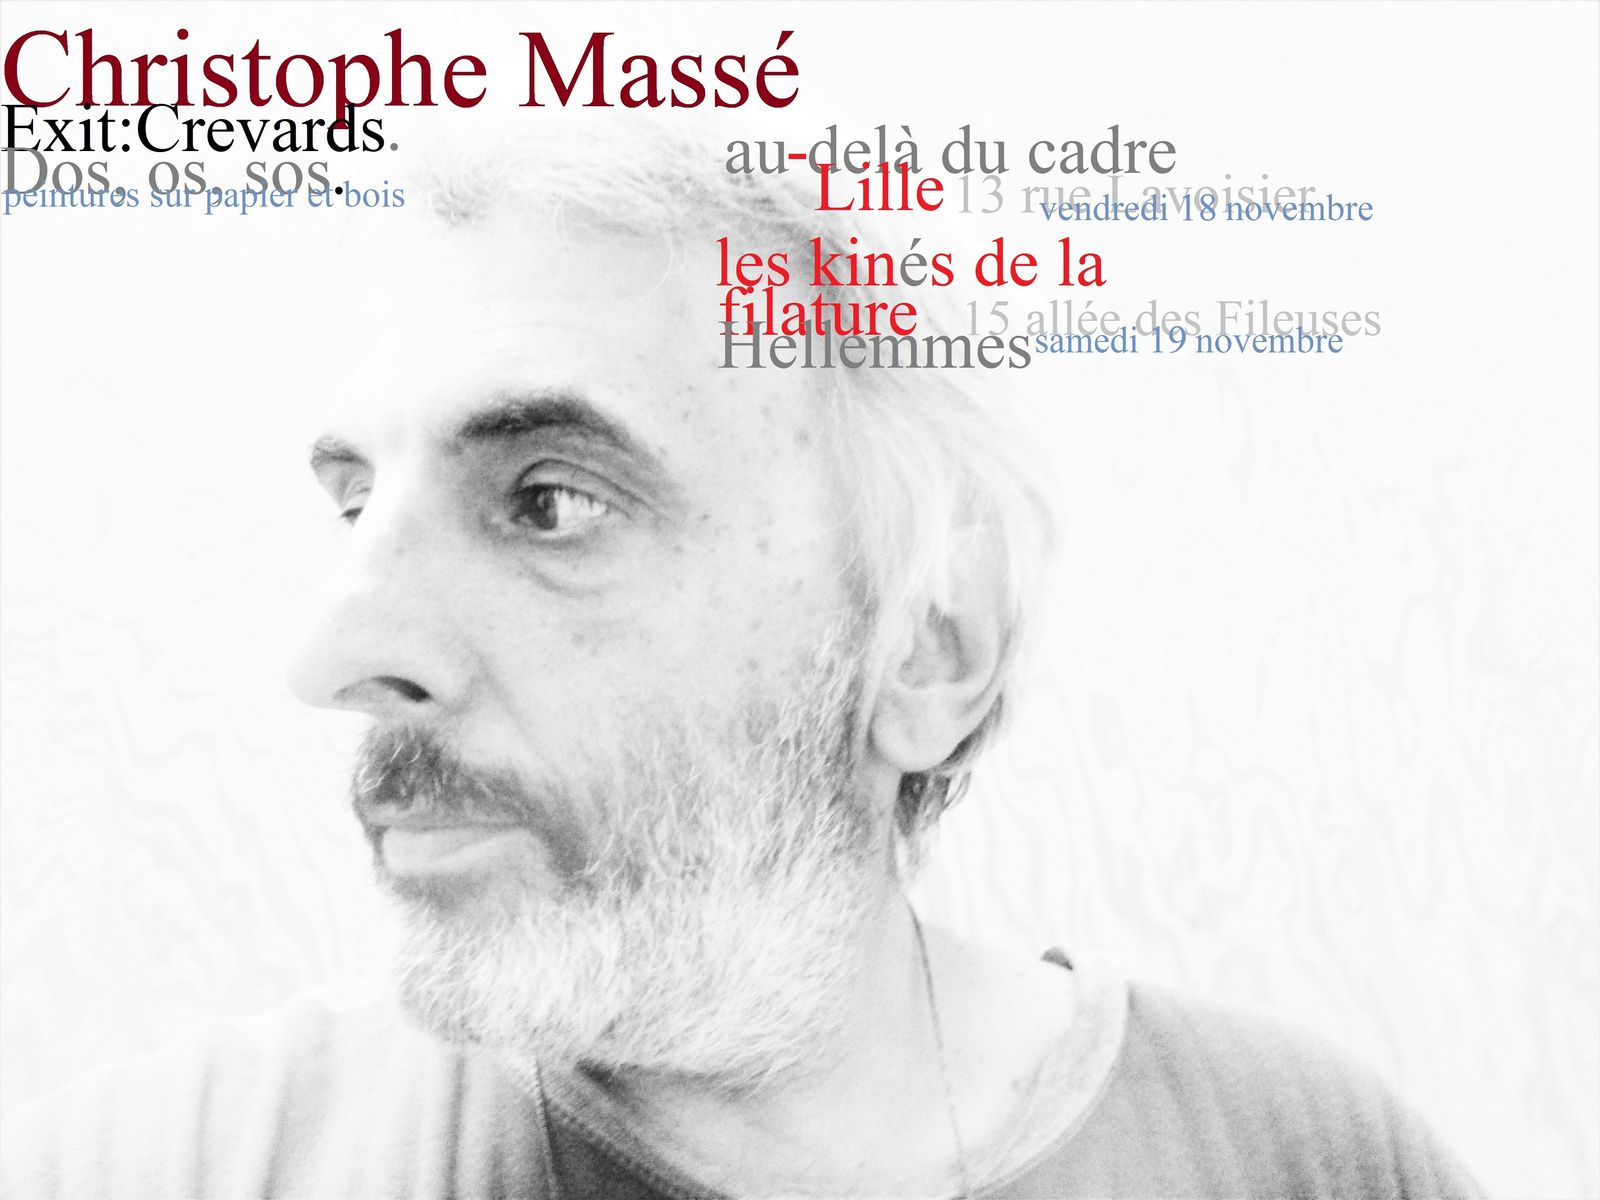 CHRISTOPHE MASSÉ